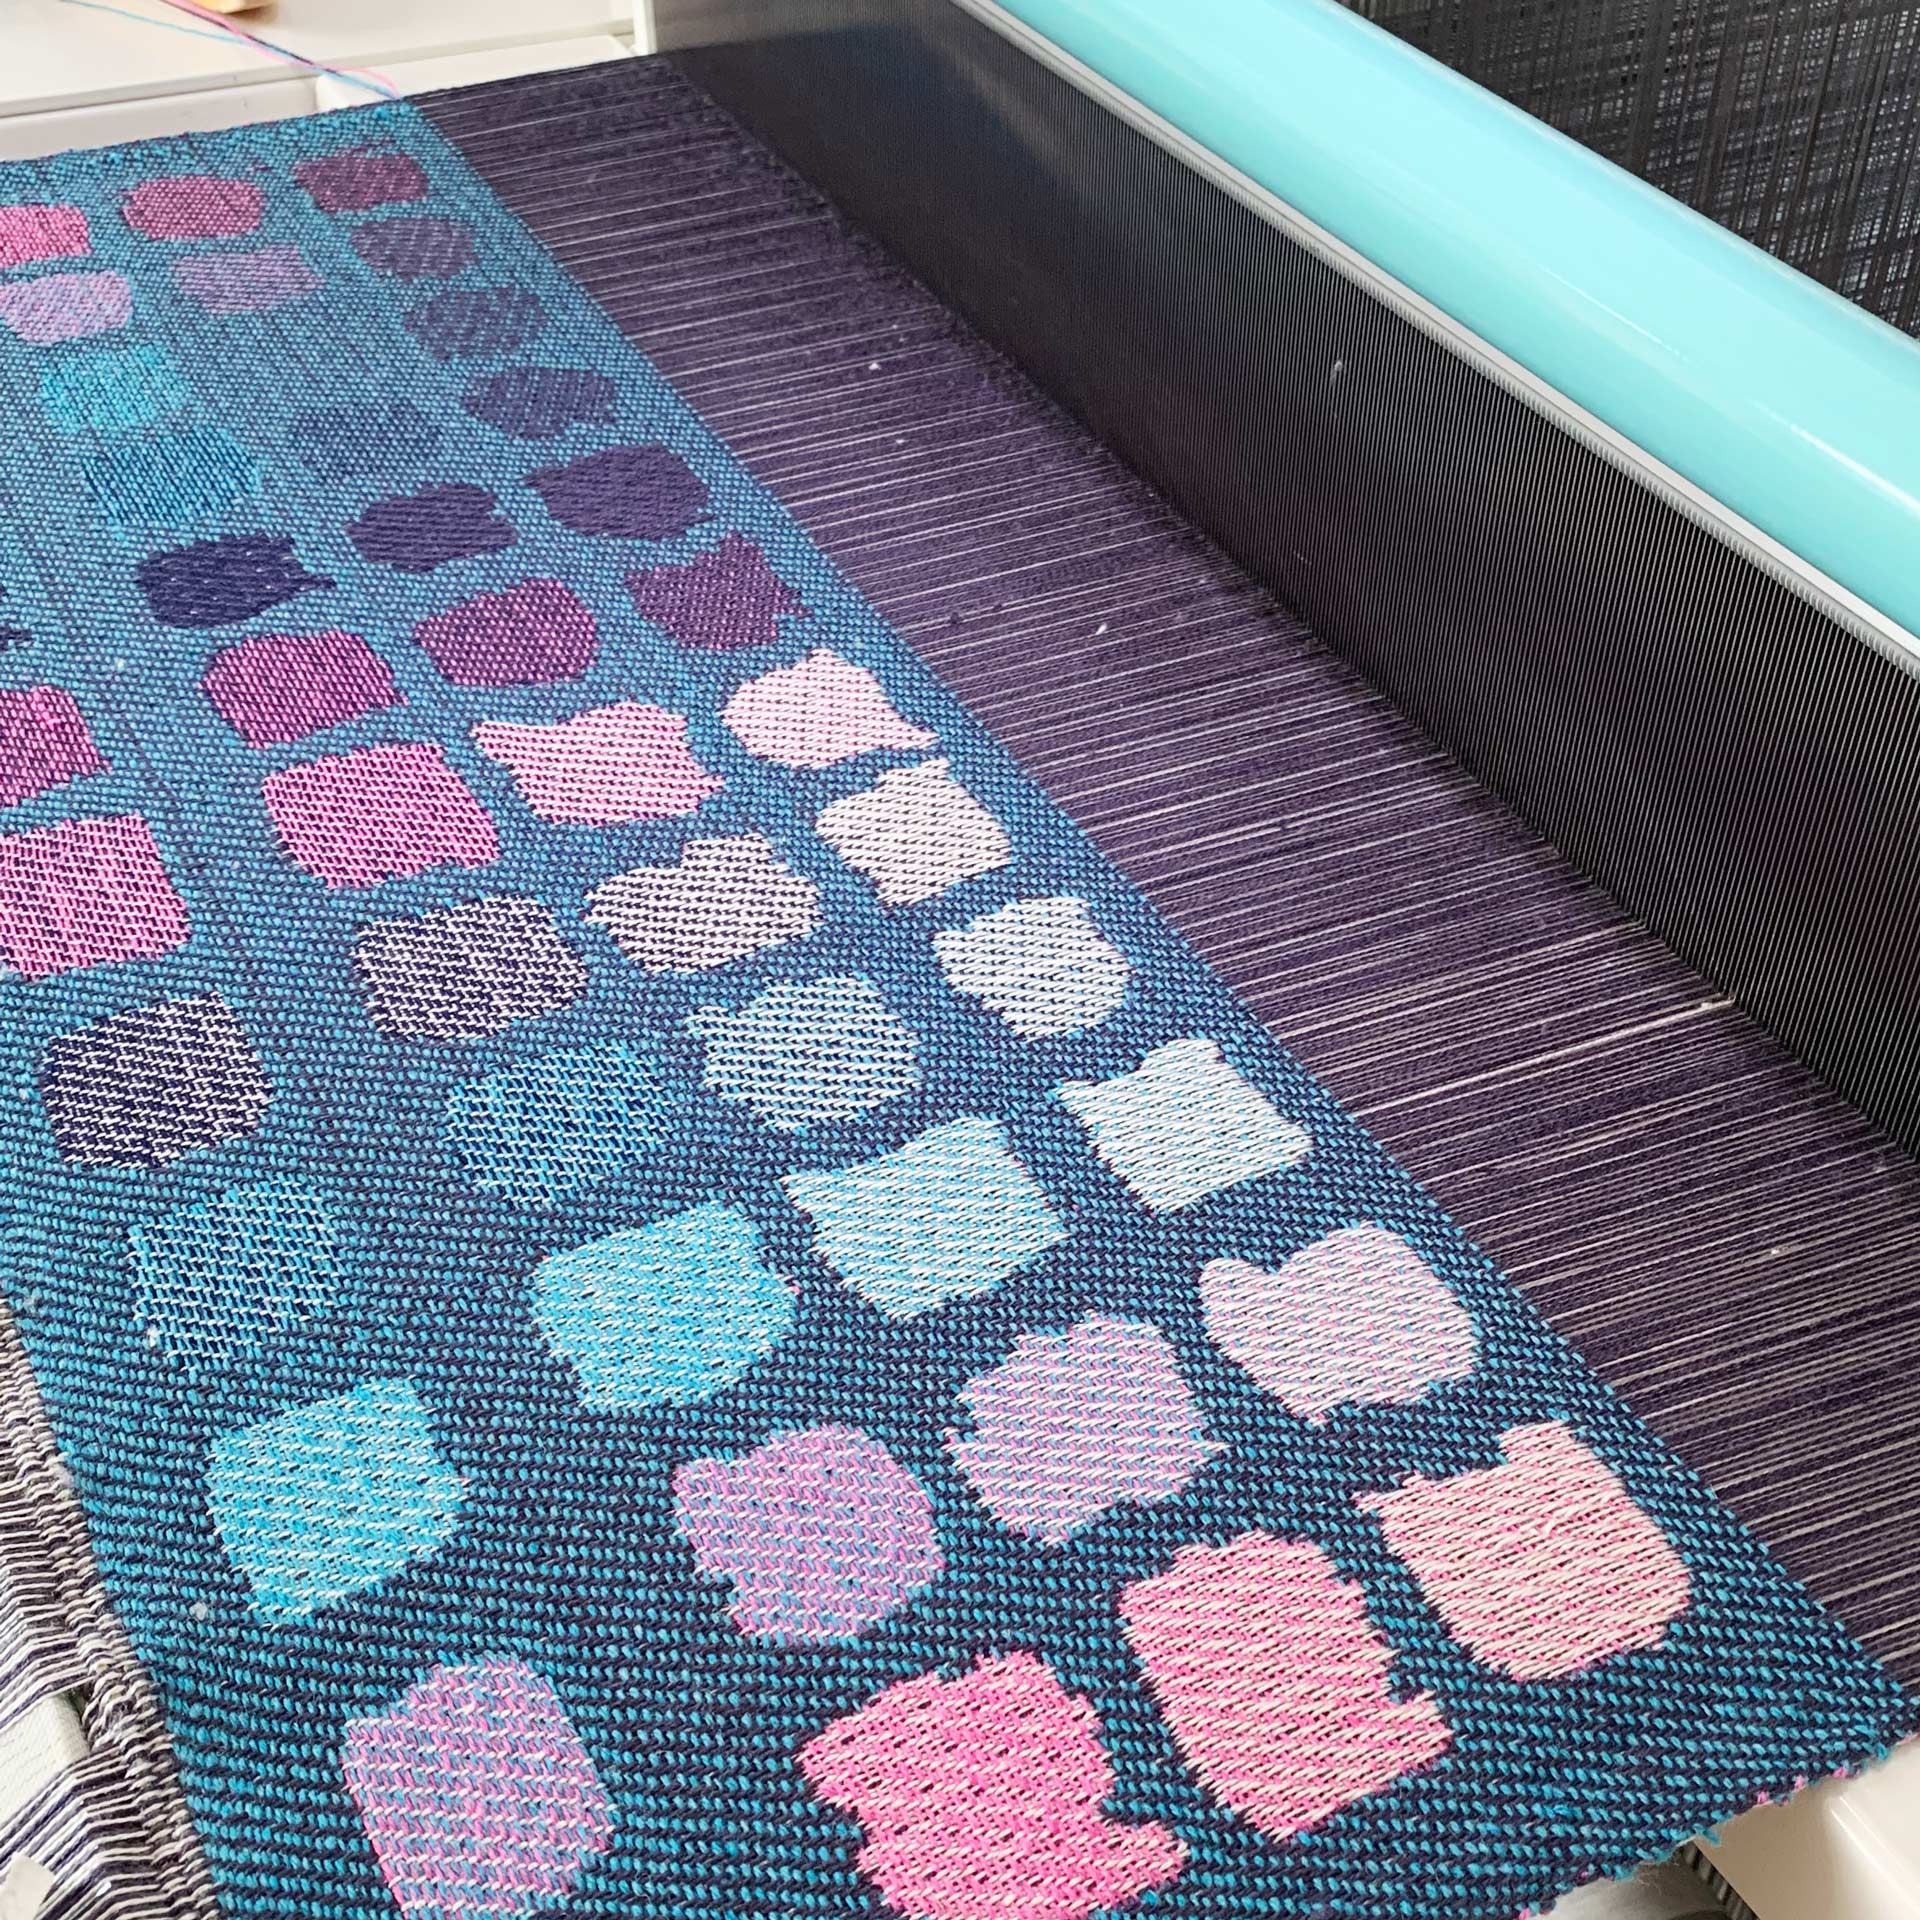 fabric being woven